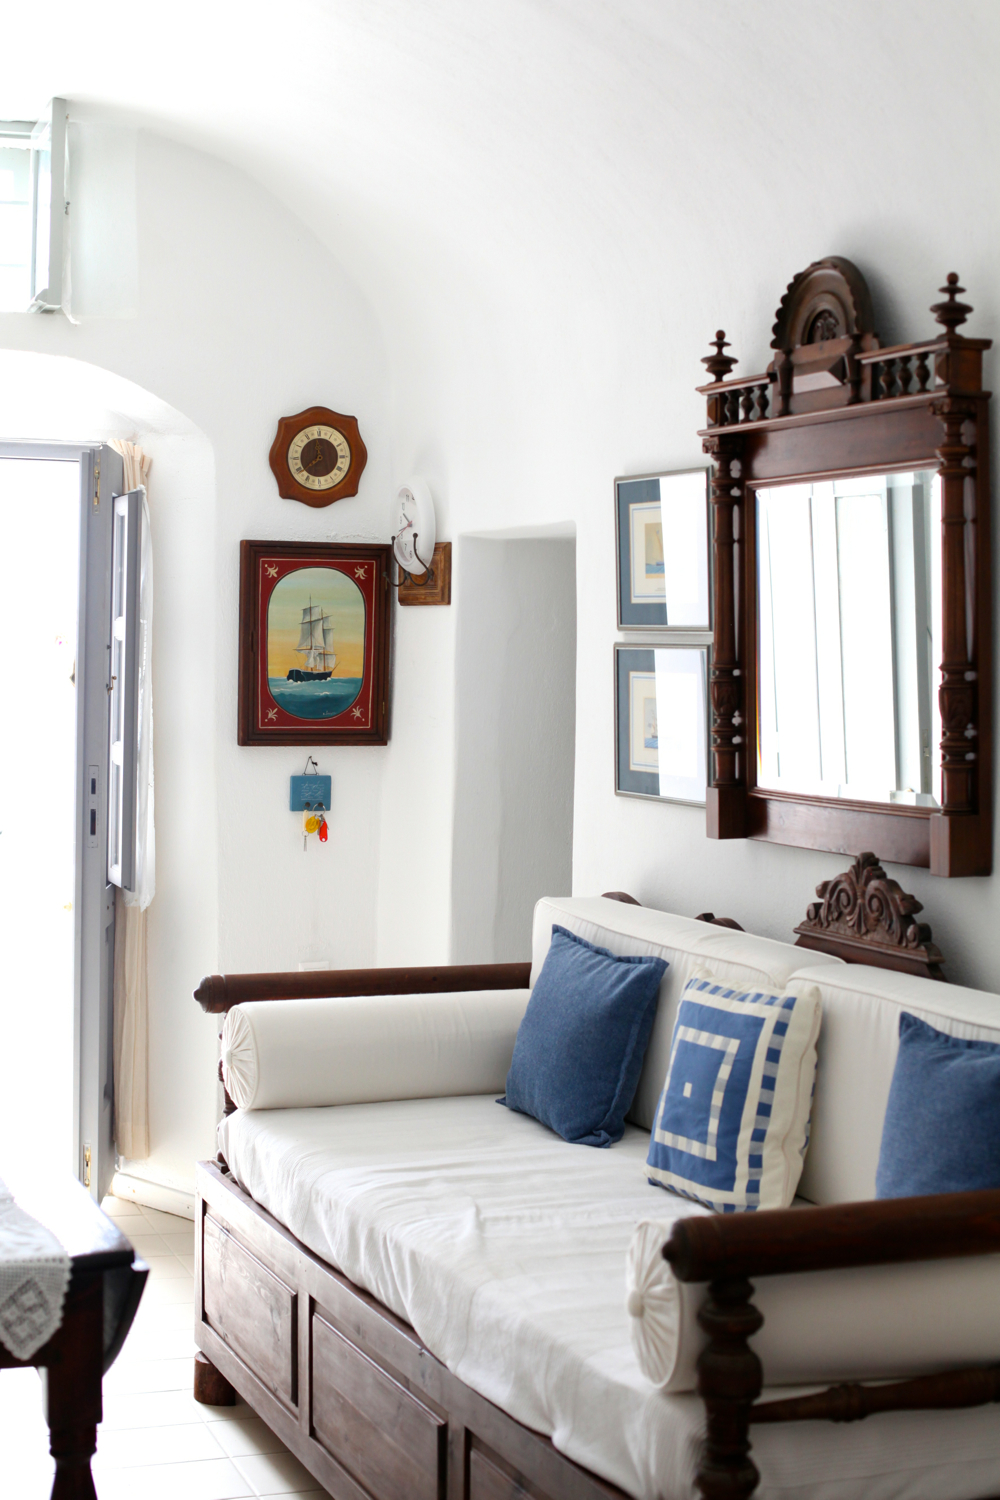 Cozy accommodation in Santorini, Photo: Courtesy of Larkin Clark